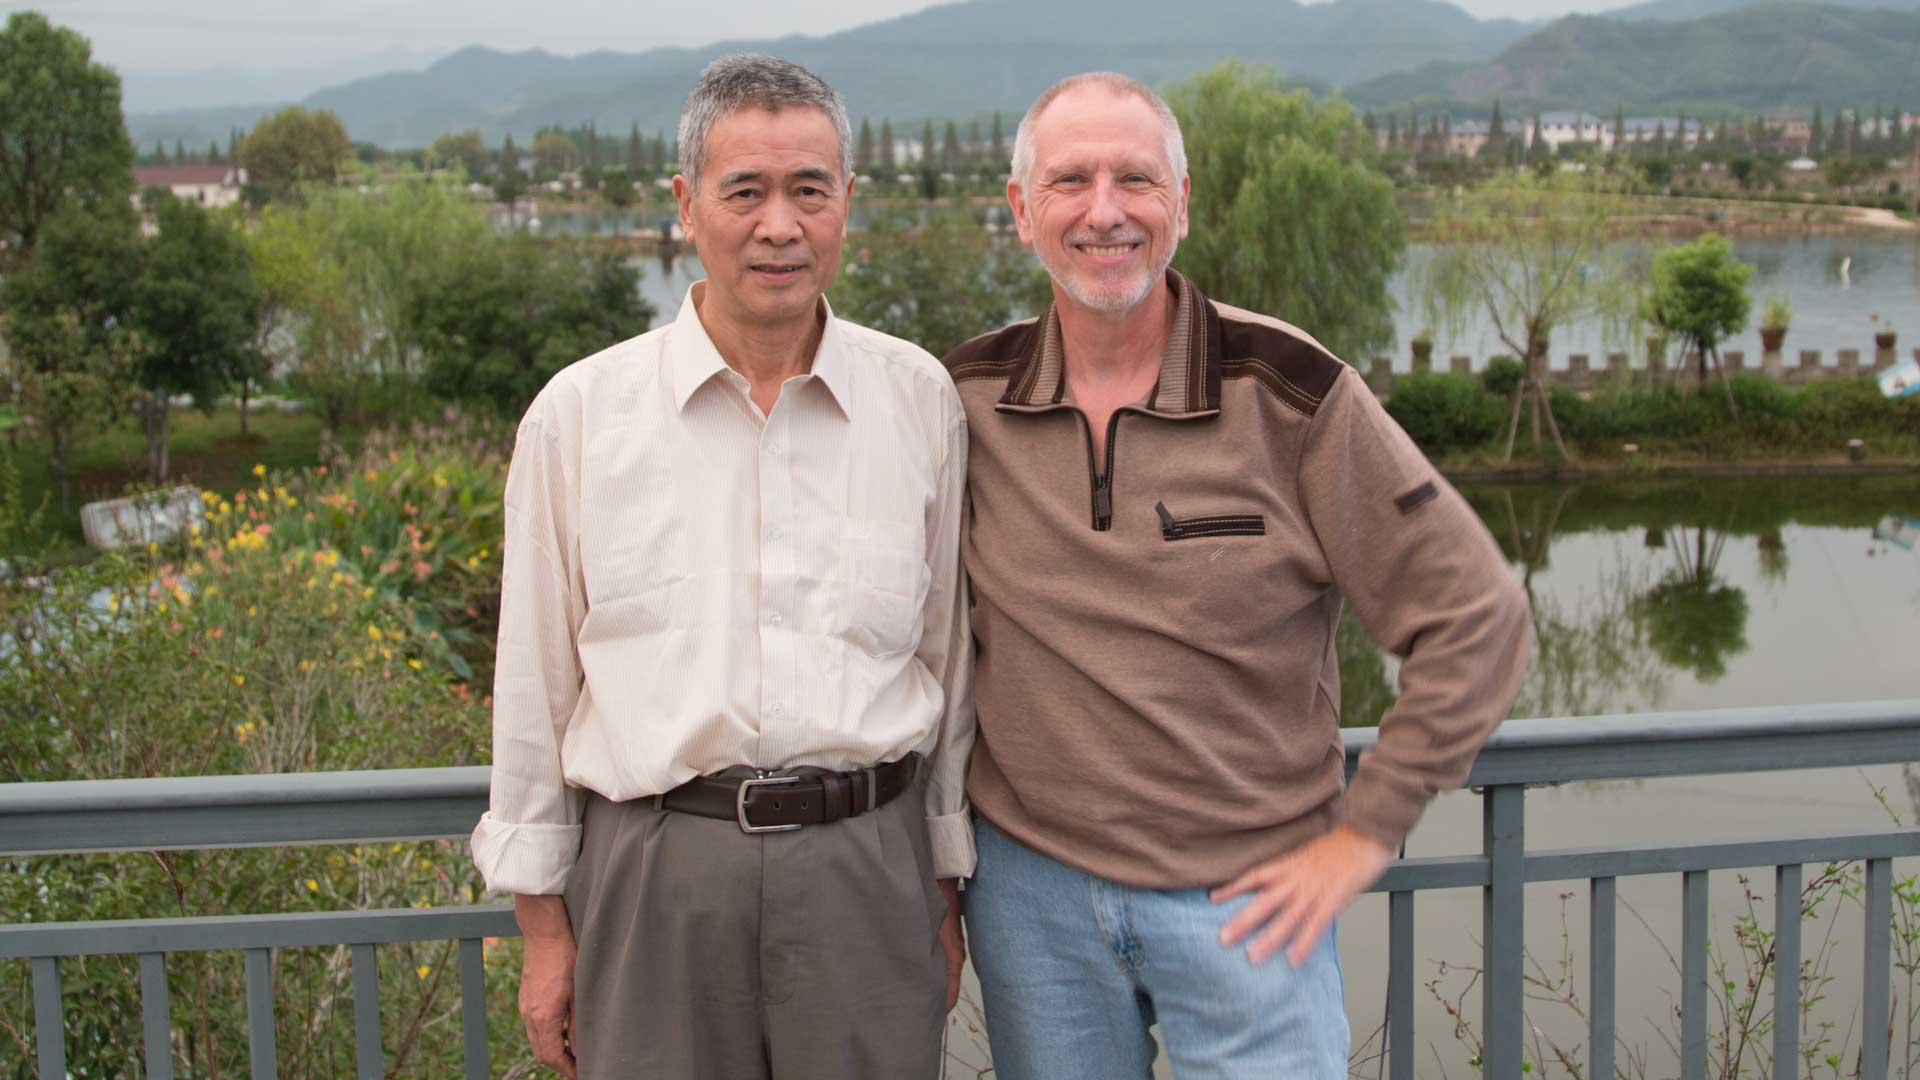 Gregor Spörri with professor Zhifa Yang, who arrived from Beijing.